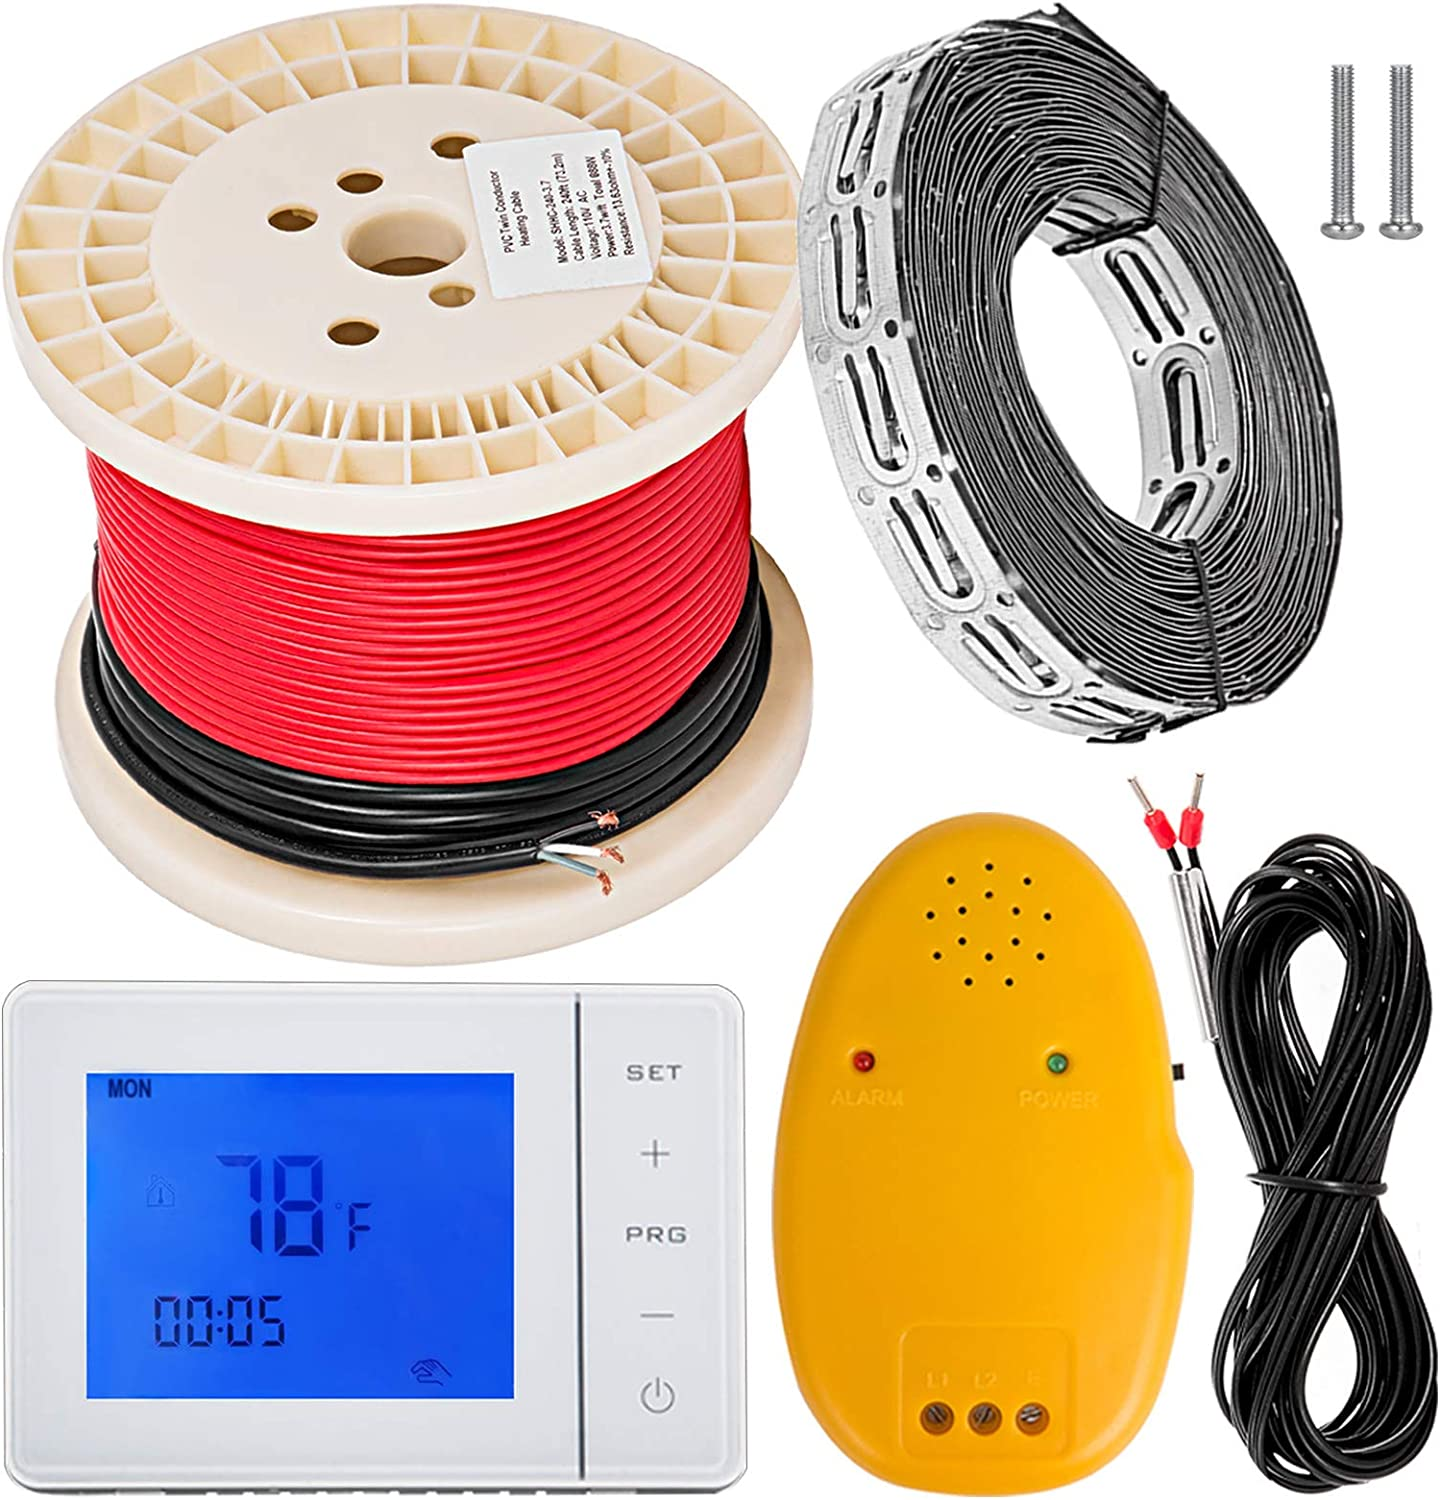 Happybuy 20 sqft Warming Cable Set 110V Electric Radiant Floor Heat Heating  Cable Kit Warming System 80ft long Heating Cable with Thermostat/Wire/Card  Strip/Temperature Control Alarm - - Amazon.comAmazon.com